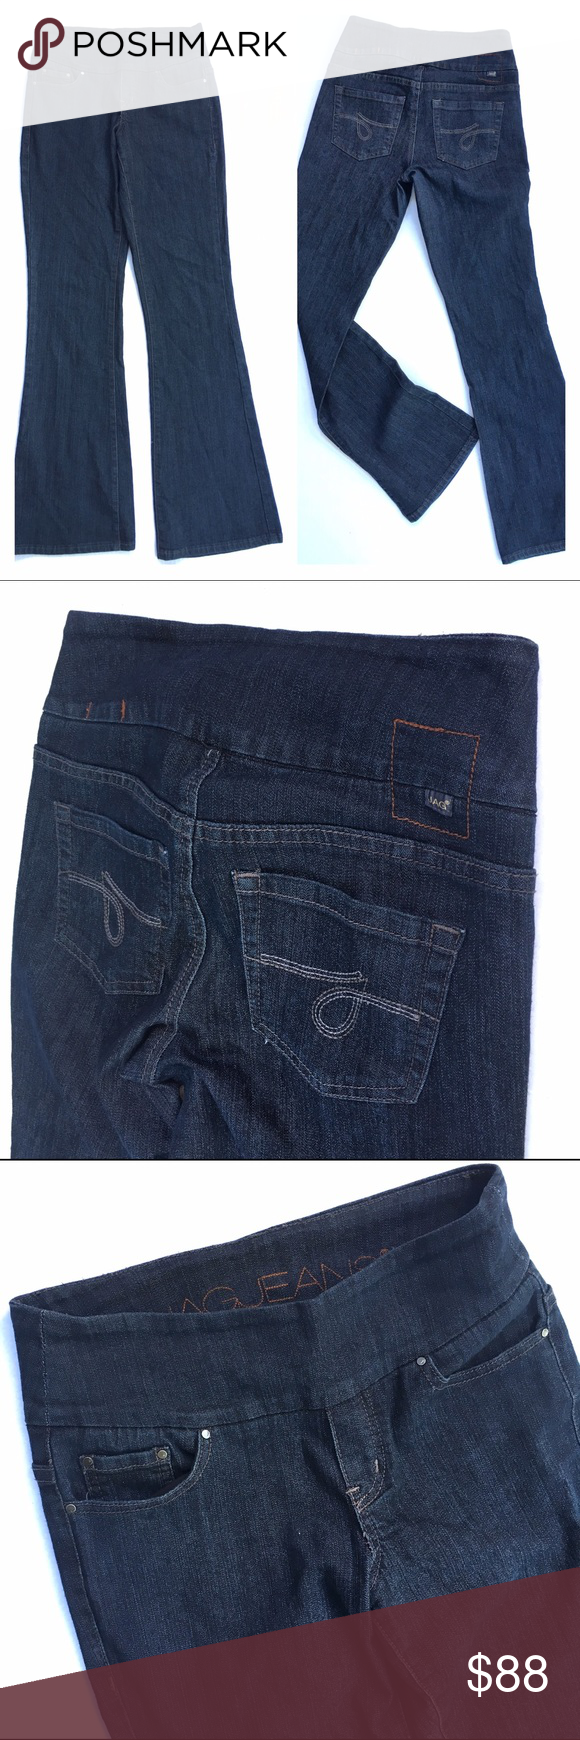 """Jag Jeans High Waisted Pull-On Flare Jeans Jag Jeans High Waisted Pull-On Flare Jeans, size 2. Flattering, comfy denim. Pull-on jean in comfortable stretch cotton-poly denim. Wide elastic waistband lends a sleek look under tops. No muffin top in these jeans!  Classic five-pocket design. Contrast topstitching. Faux fly. Logo patch at back waist. 77% cotton, 21% polyester, 2% spandex. Machine wash cold, tumble dry low. Imported. Measurements: Waist 15.25"""" flat across, Inseam: 32.5"""", Rise…"""